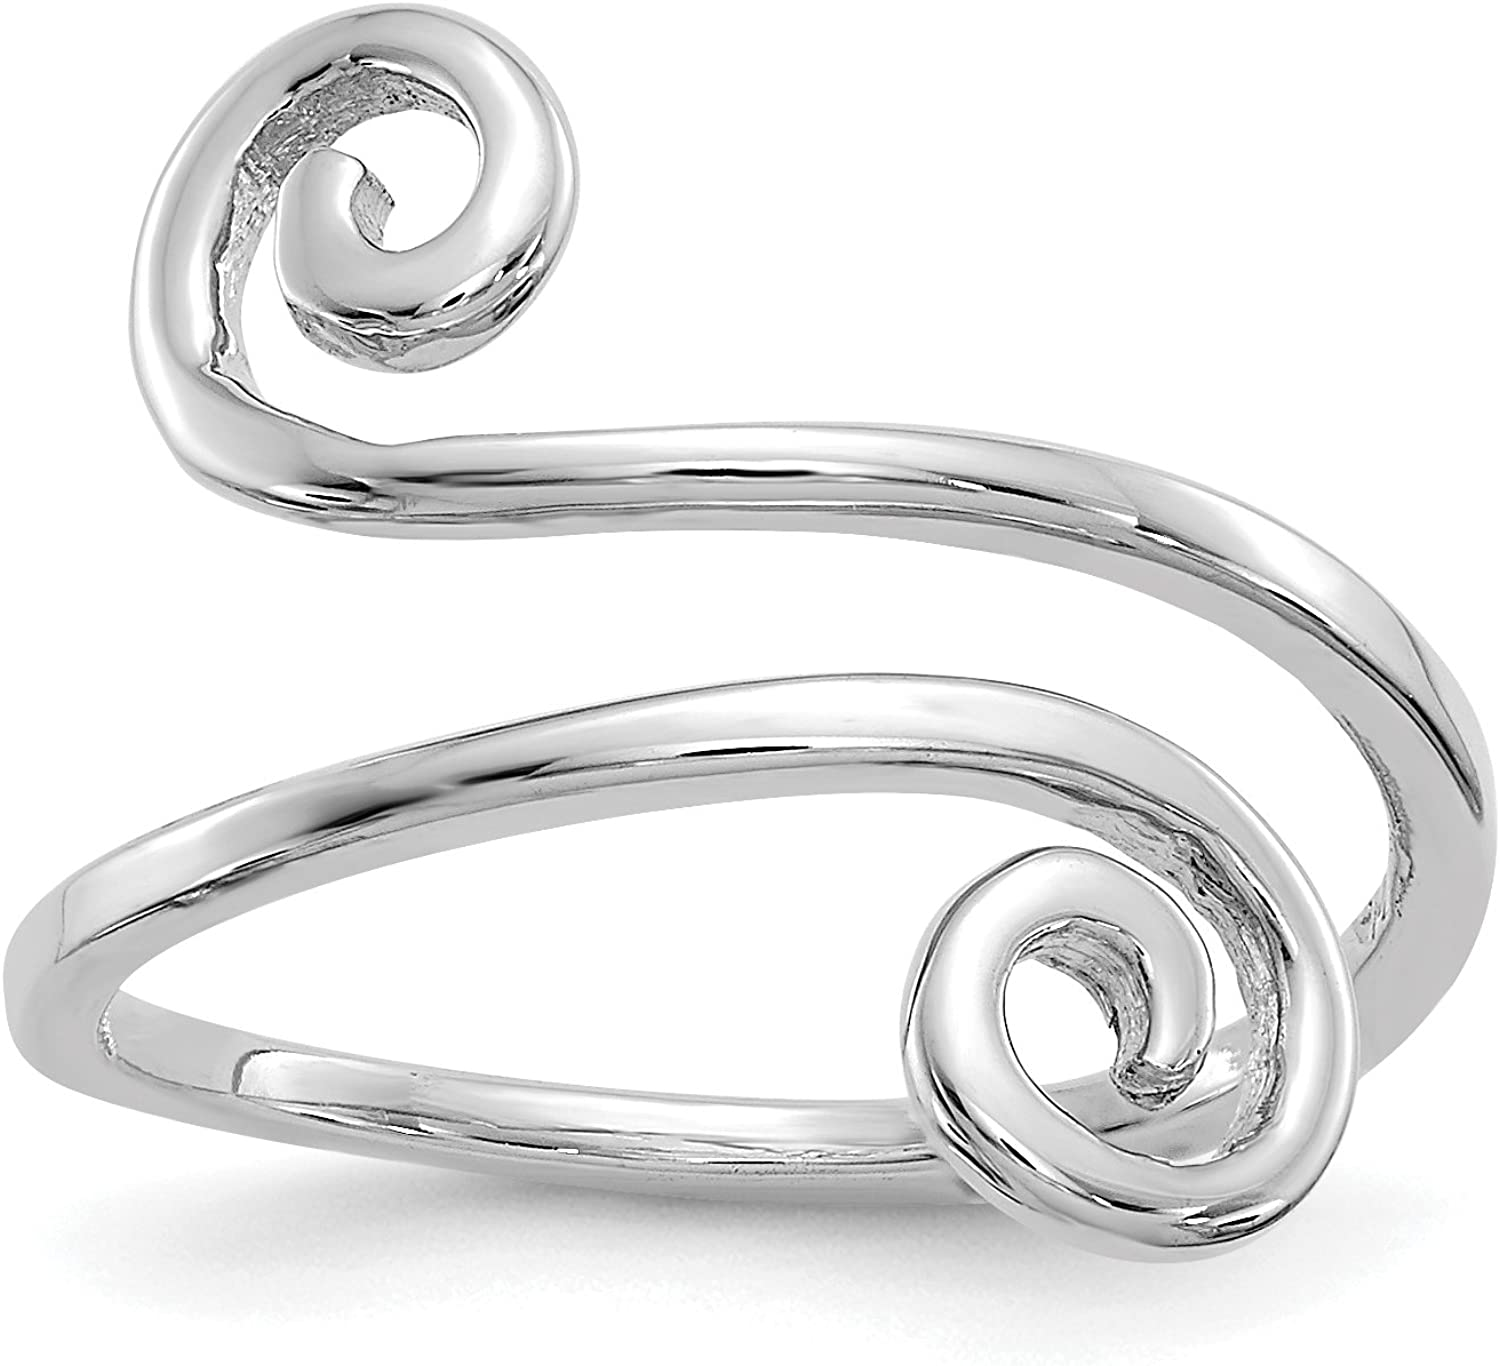 14k White Gold Toe Ring with Swirl Design Ends